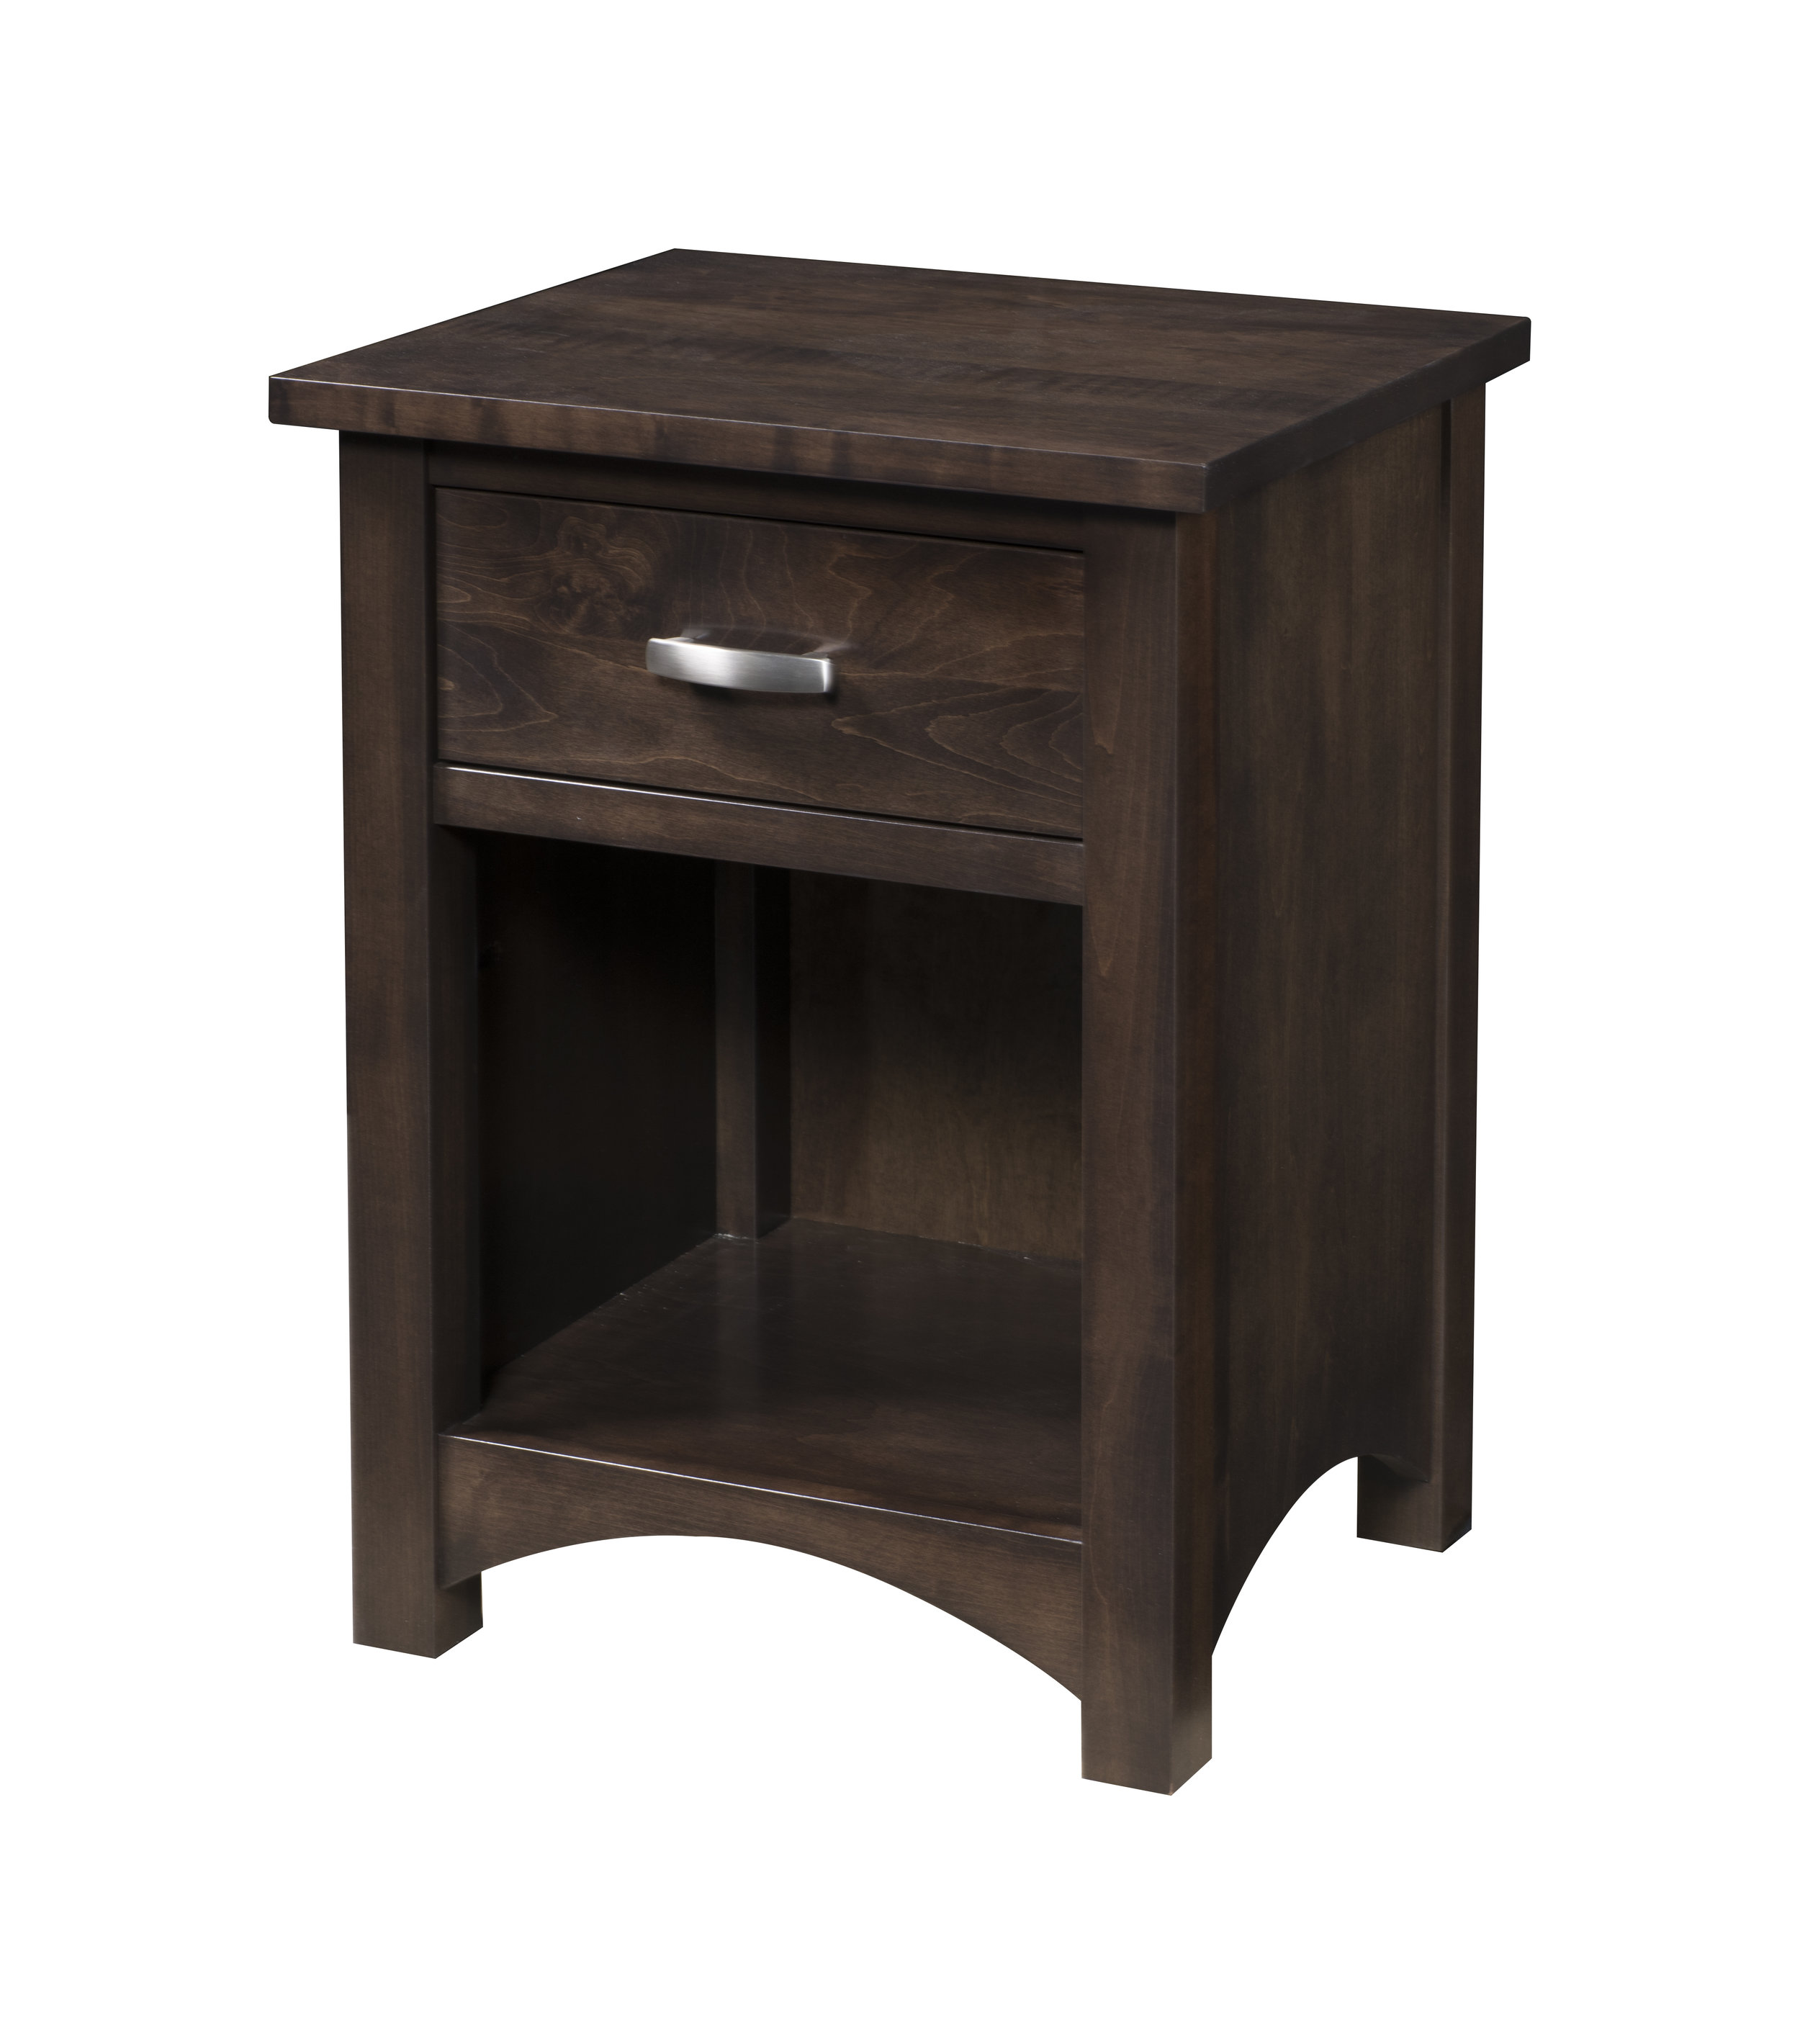 CM-1540 Night Stand.jpg